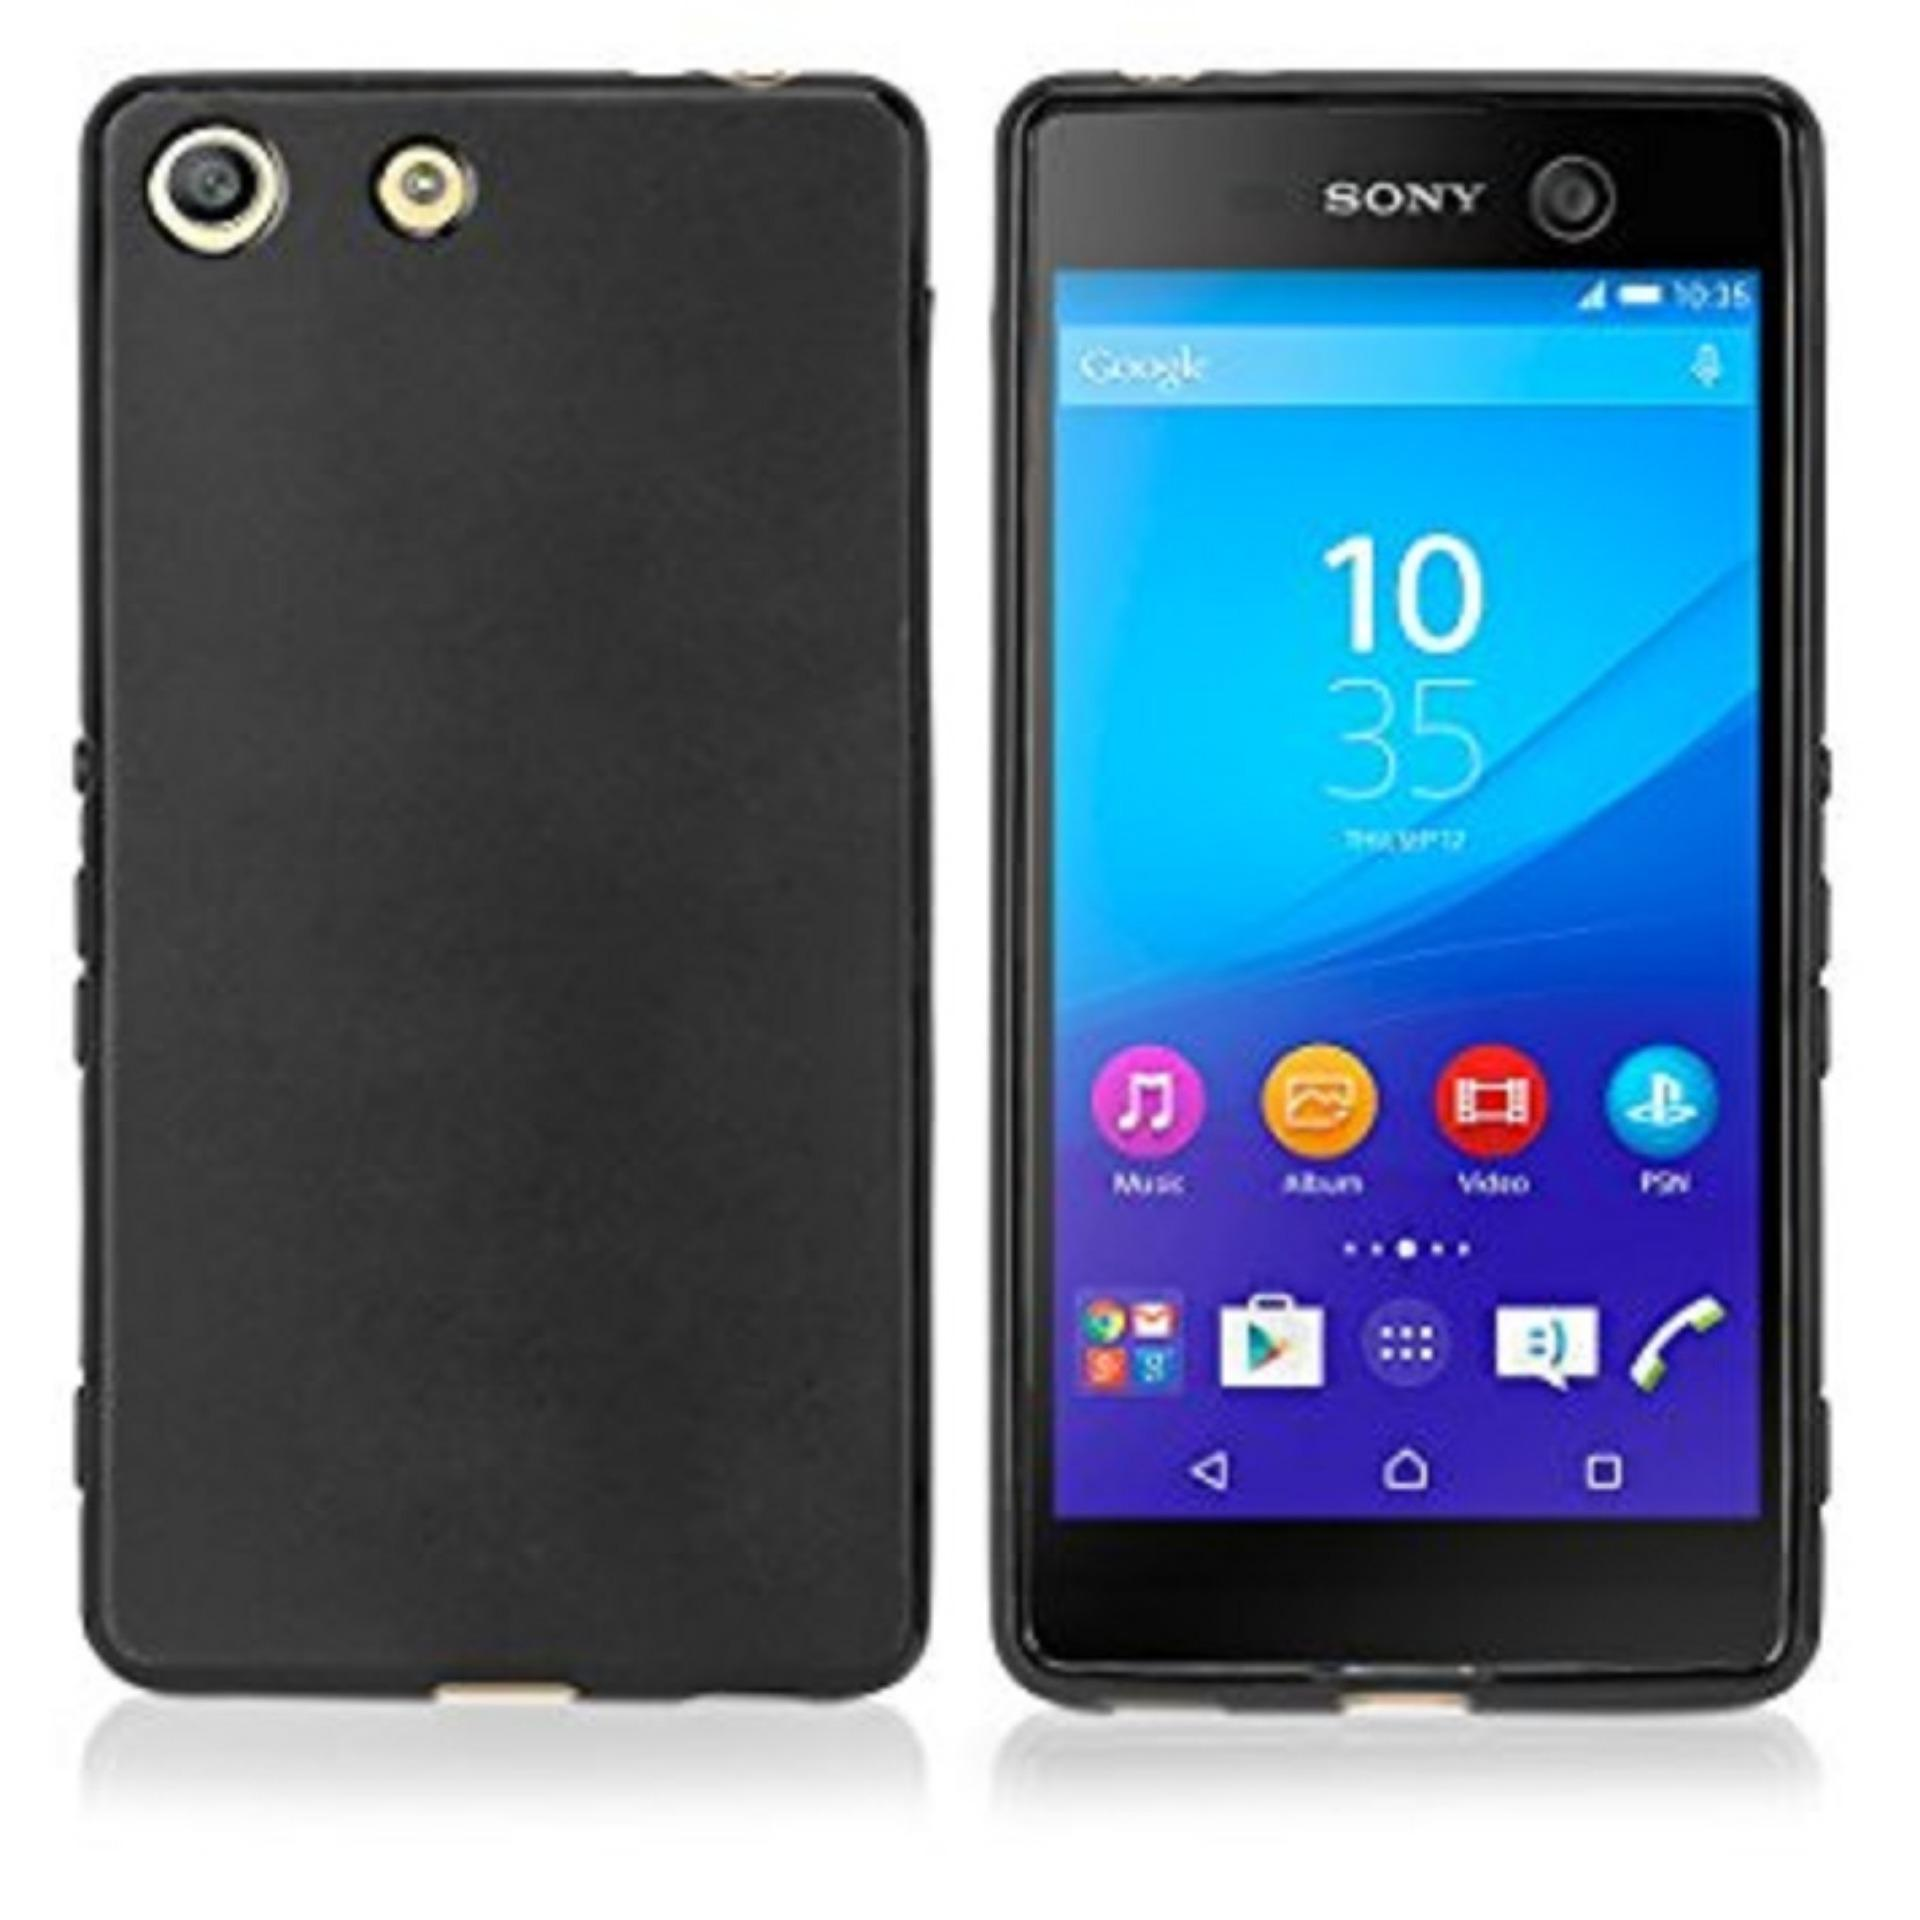 DarkNight for Sony Xperia Experia M5 (5″) / Docomo / Dual | Slim Case Black Matte Softcase Premium (Anti Minyak/Anti Sidik Jari) – Hitam Doff